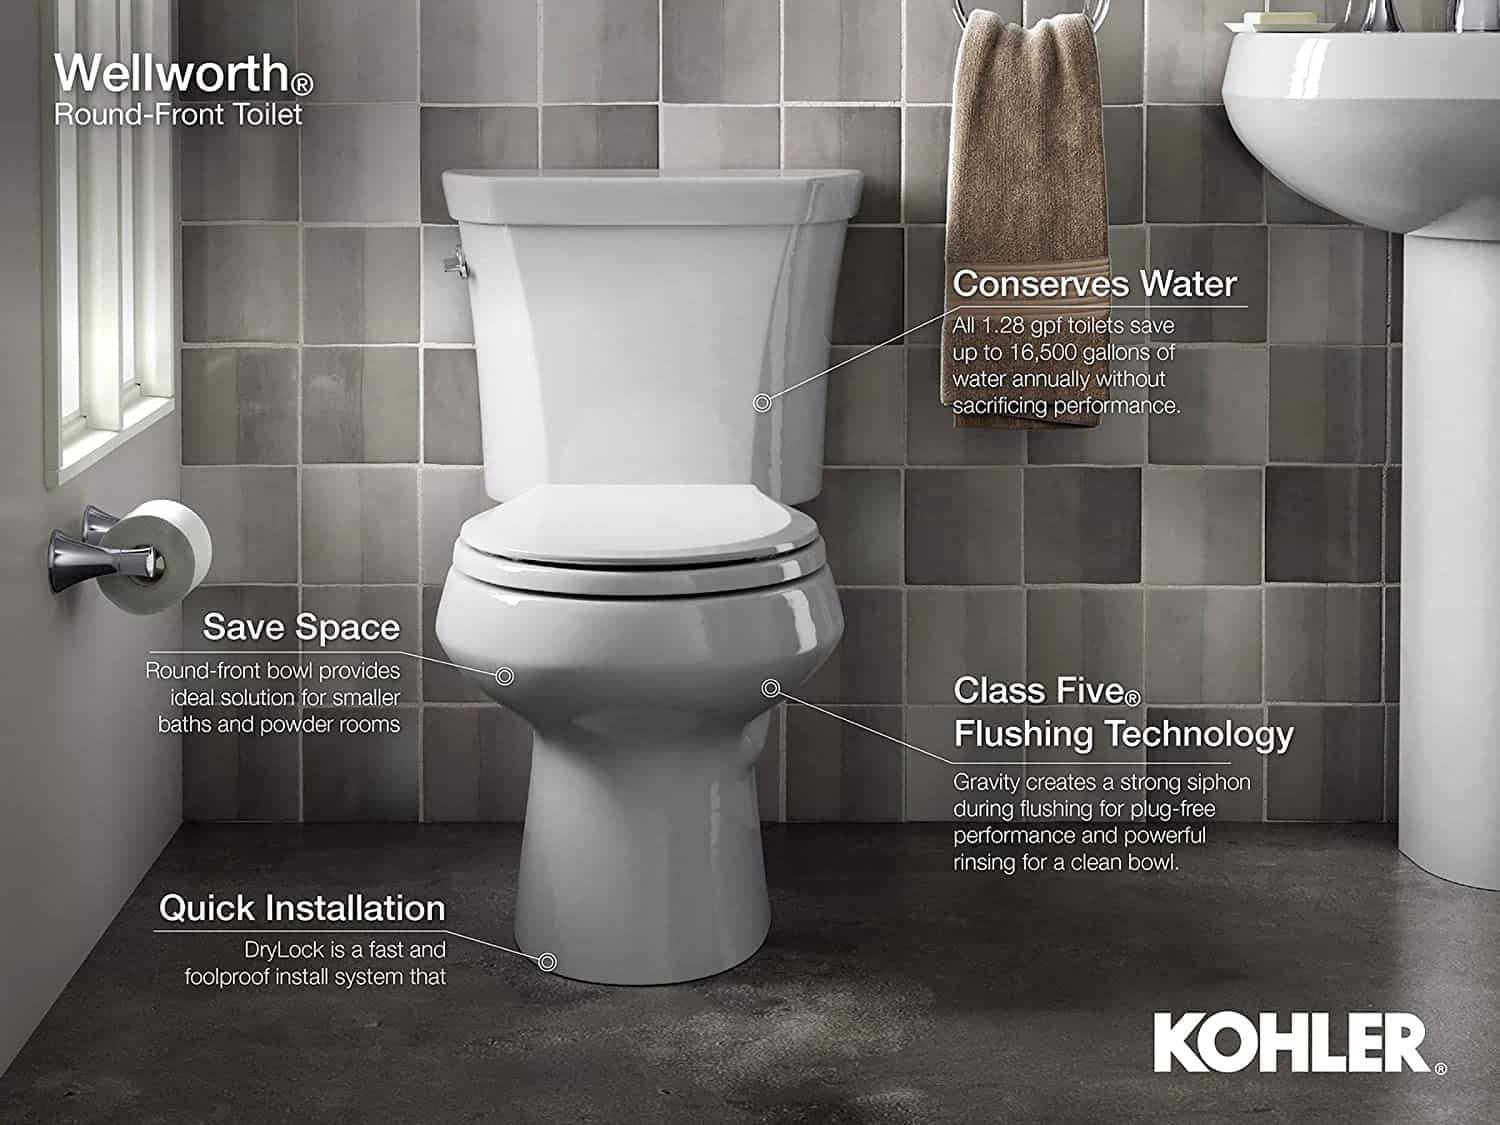 wellworth toilet from kohler showing features